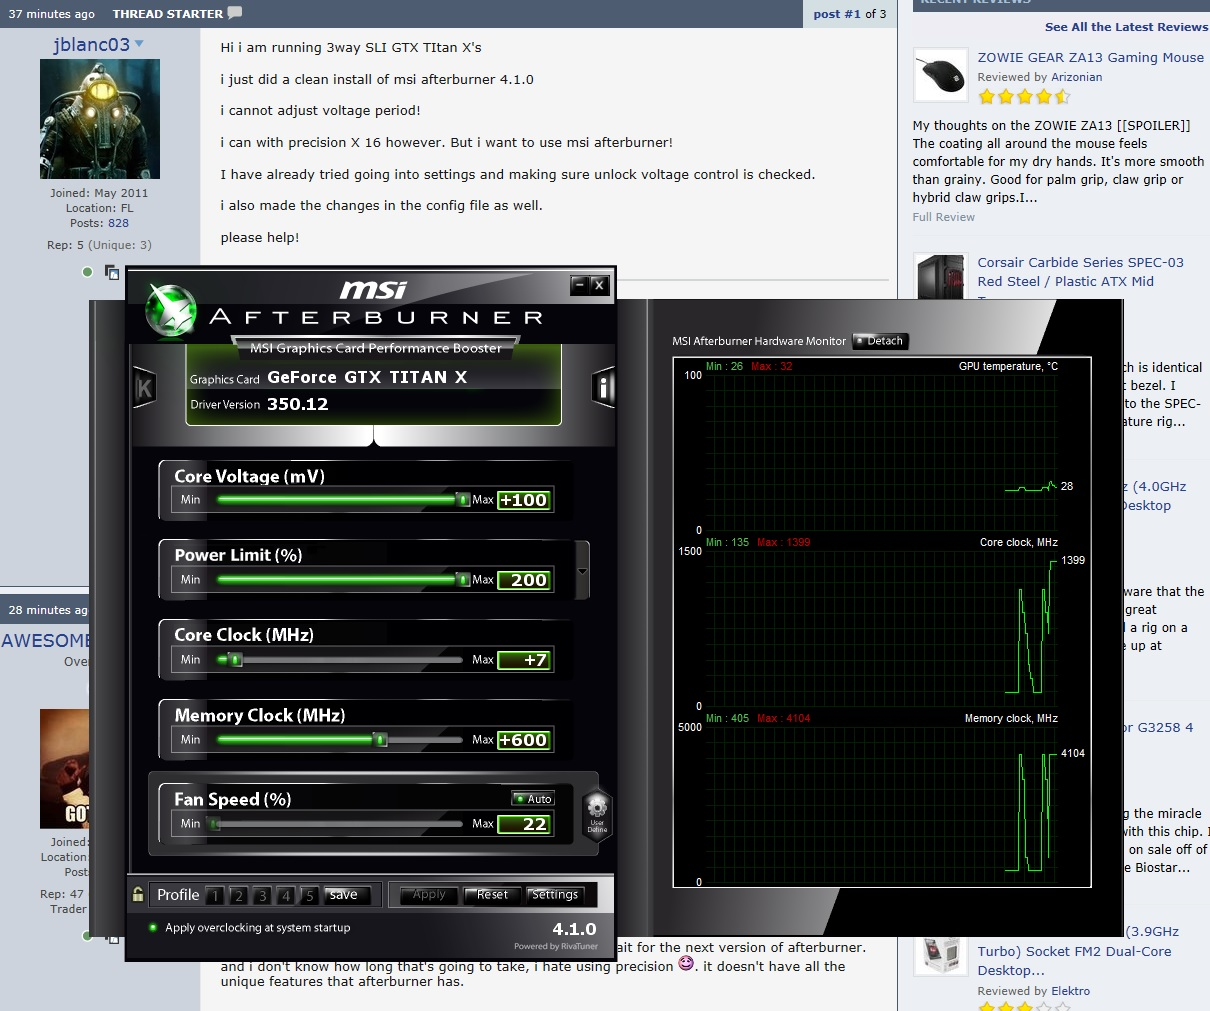 msi afterburner 4 1 0 cant unlock voltage !! - Overclock net